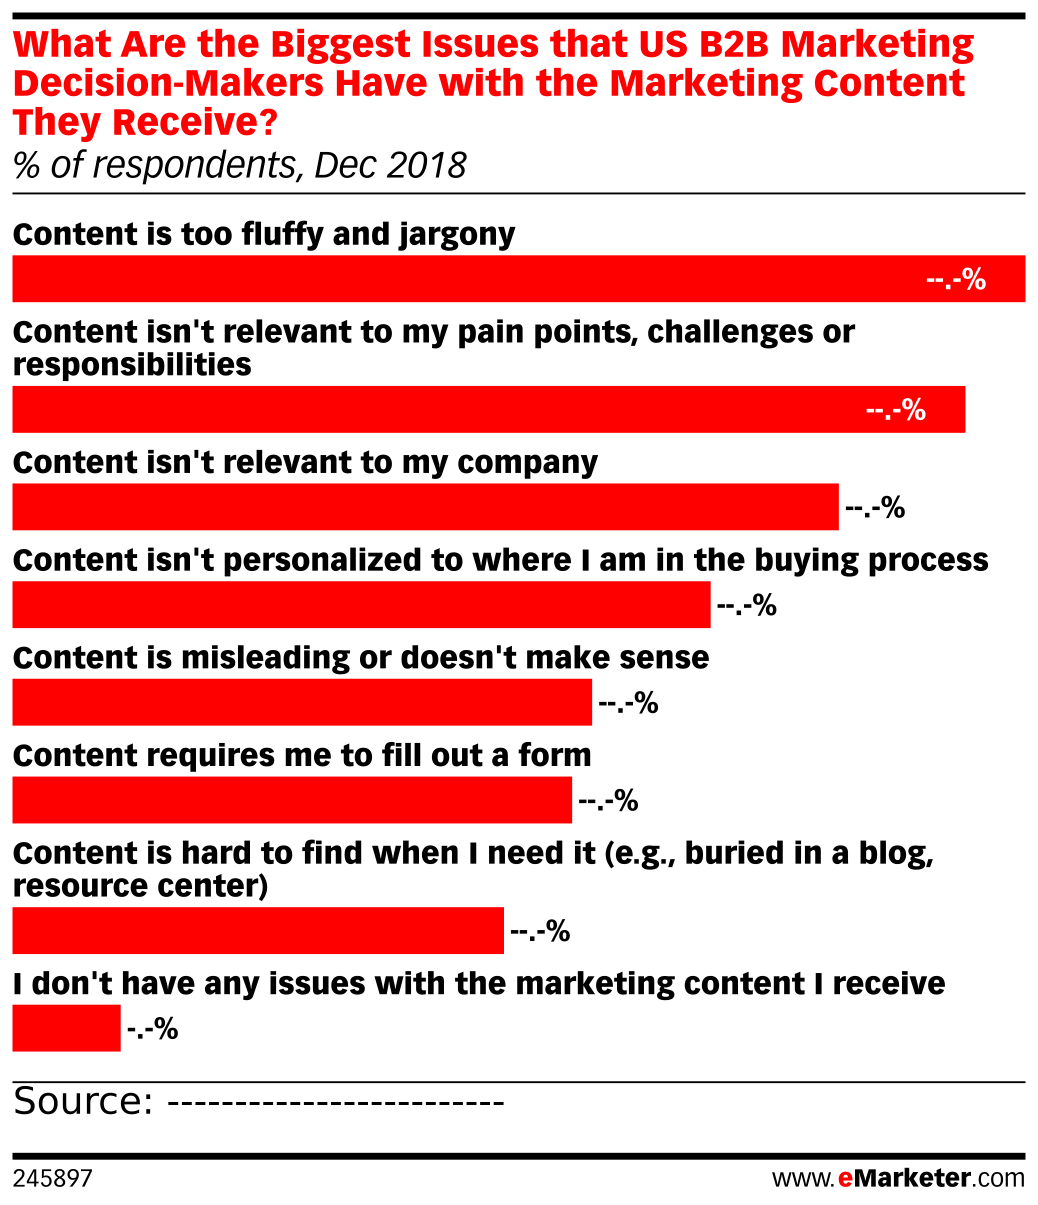 What Are the Biggest Issues that US B2B Marketing Decision-Makers Have with the Marketing Content They Receive? (% of respondents, Dec 2018)